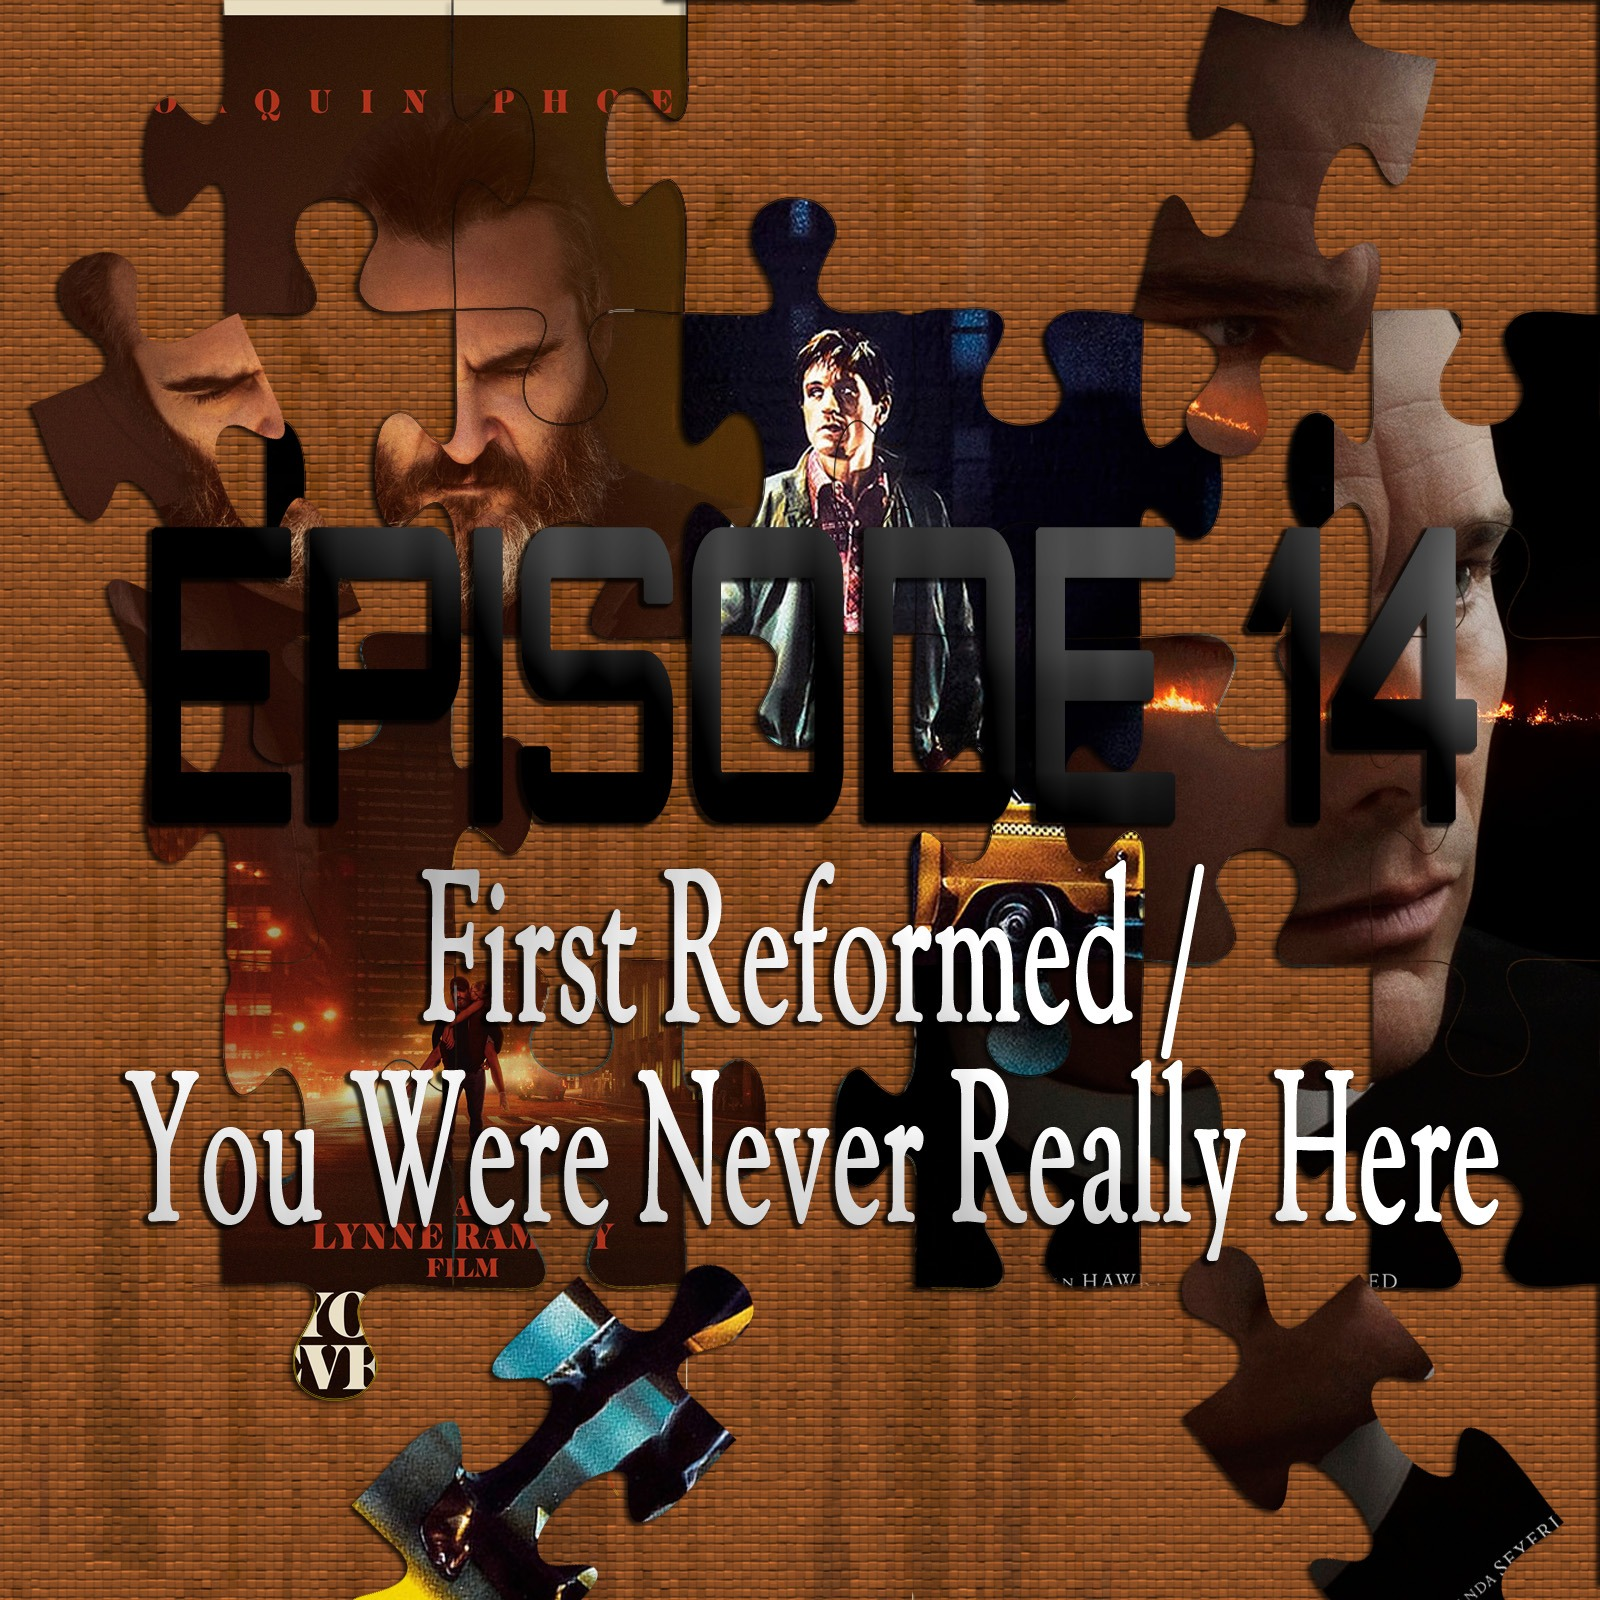 First Reformed / You Were Never Really Here (Featuring Kris Krainock)